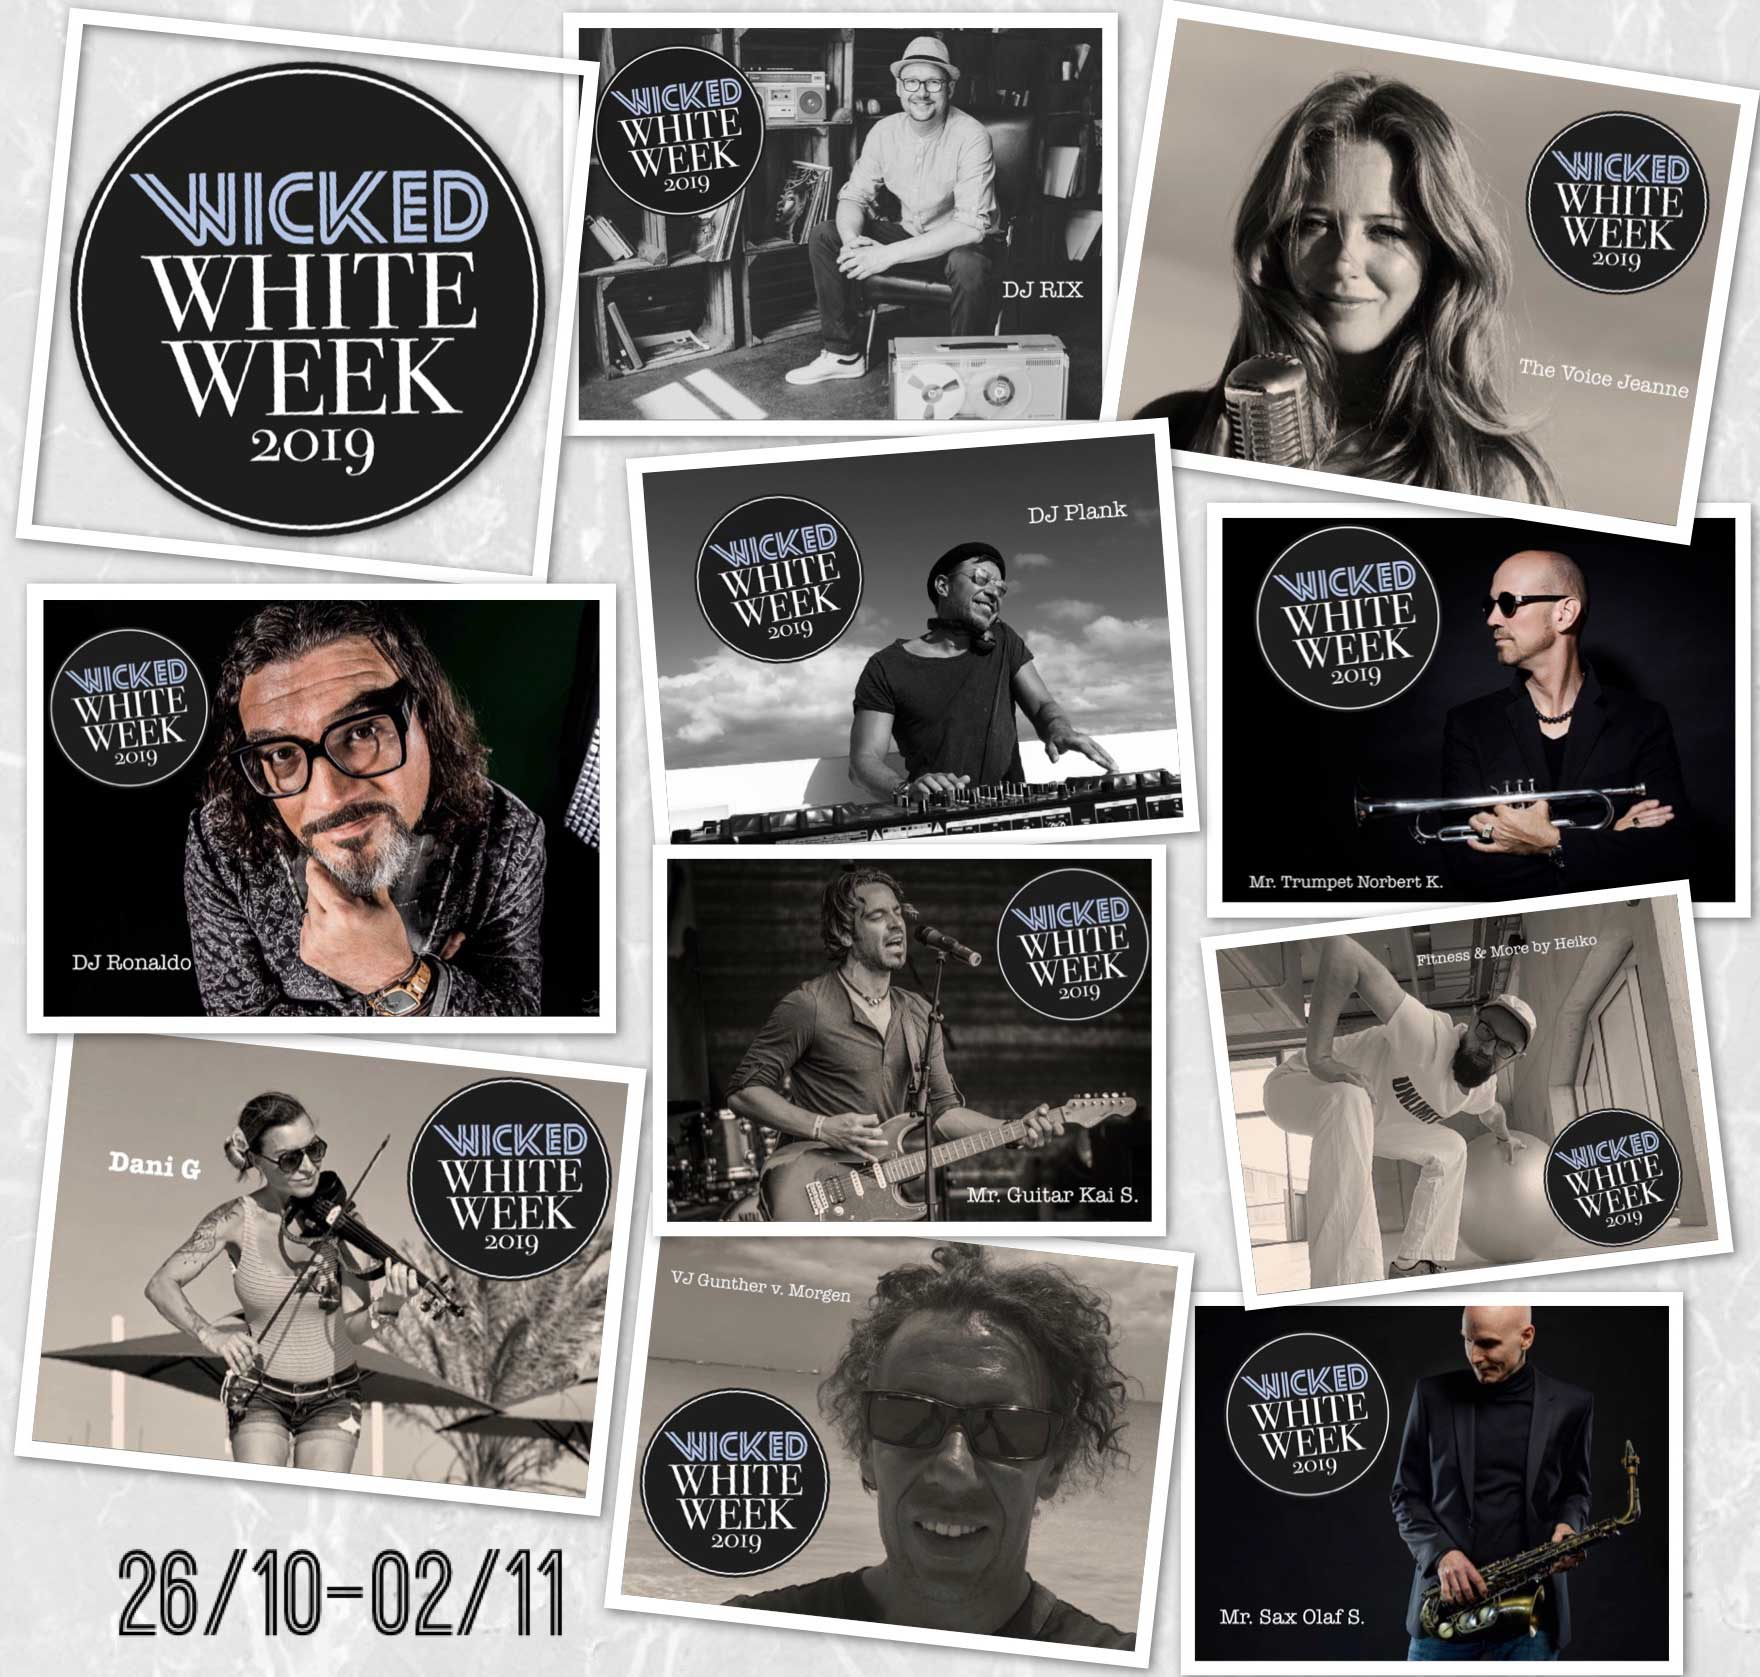 Die Acts der Wicked White Week 2019 im Robinson Club Jandia Playa